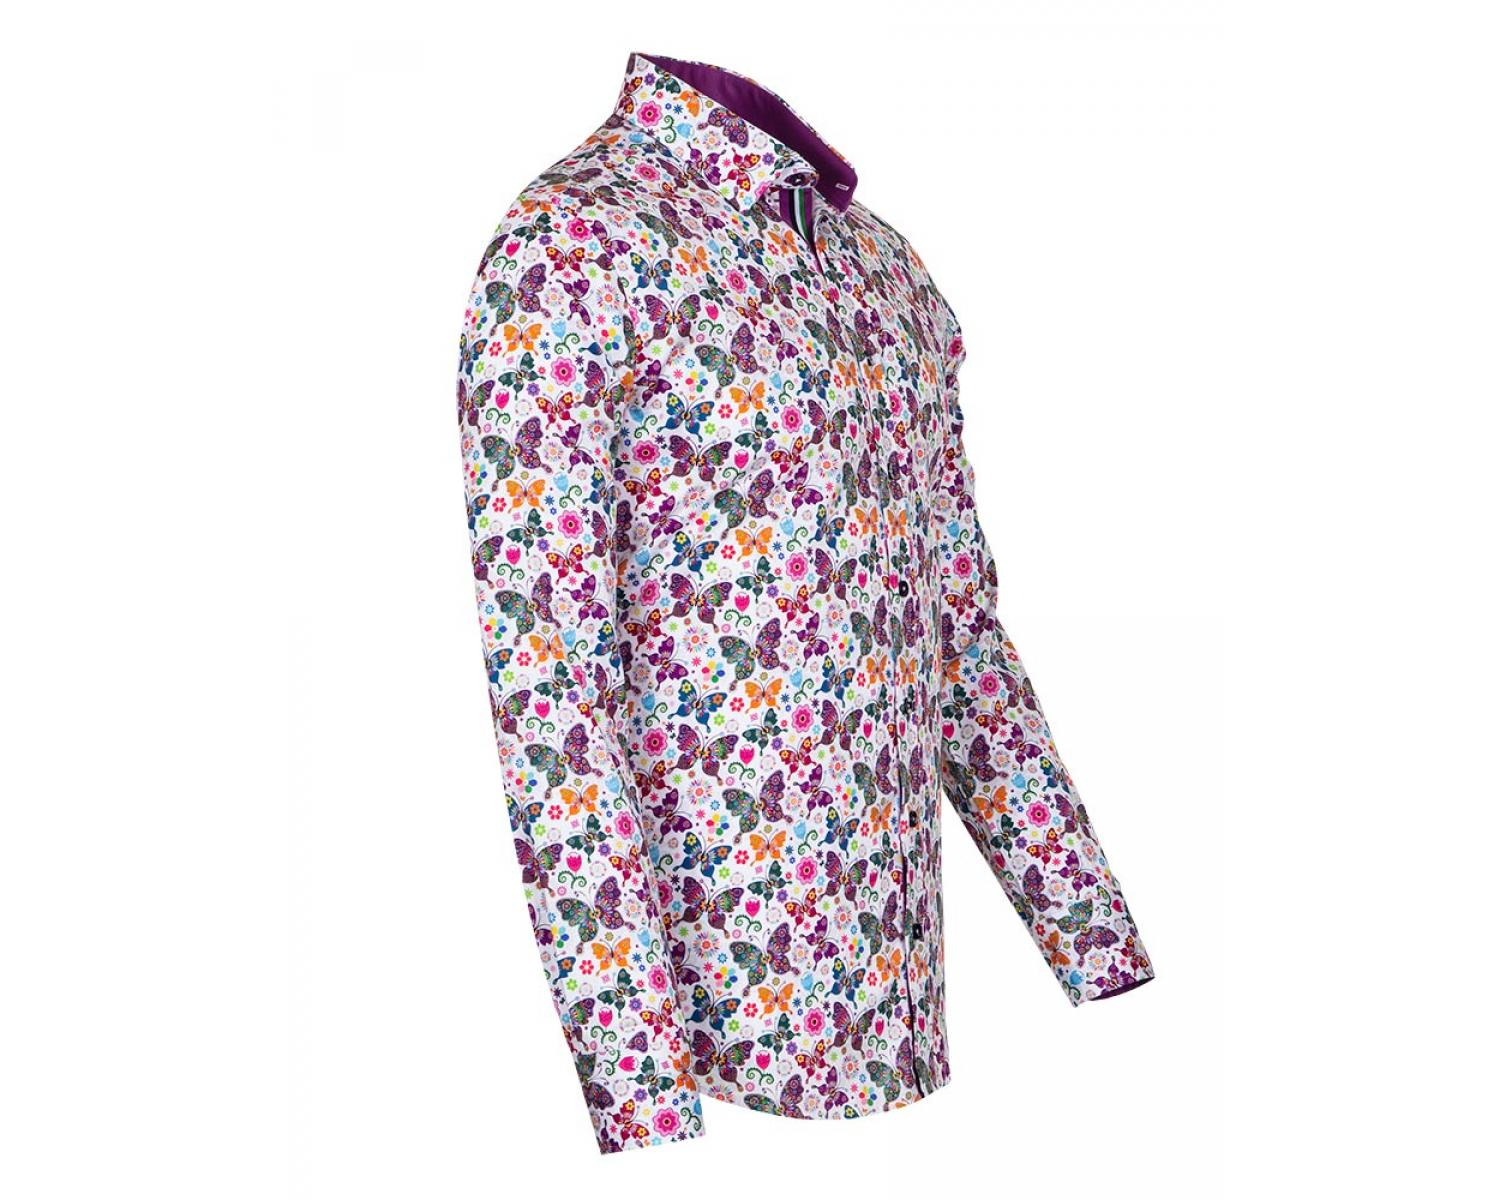 5cffd06f799 SL 6707 Men's white butterfly print long sleeved pure cotton shirt